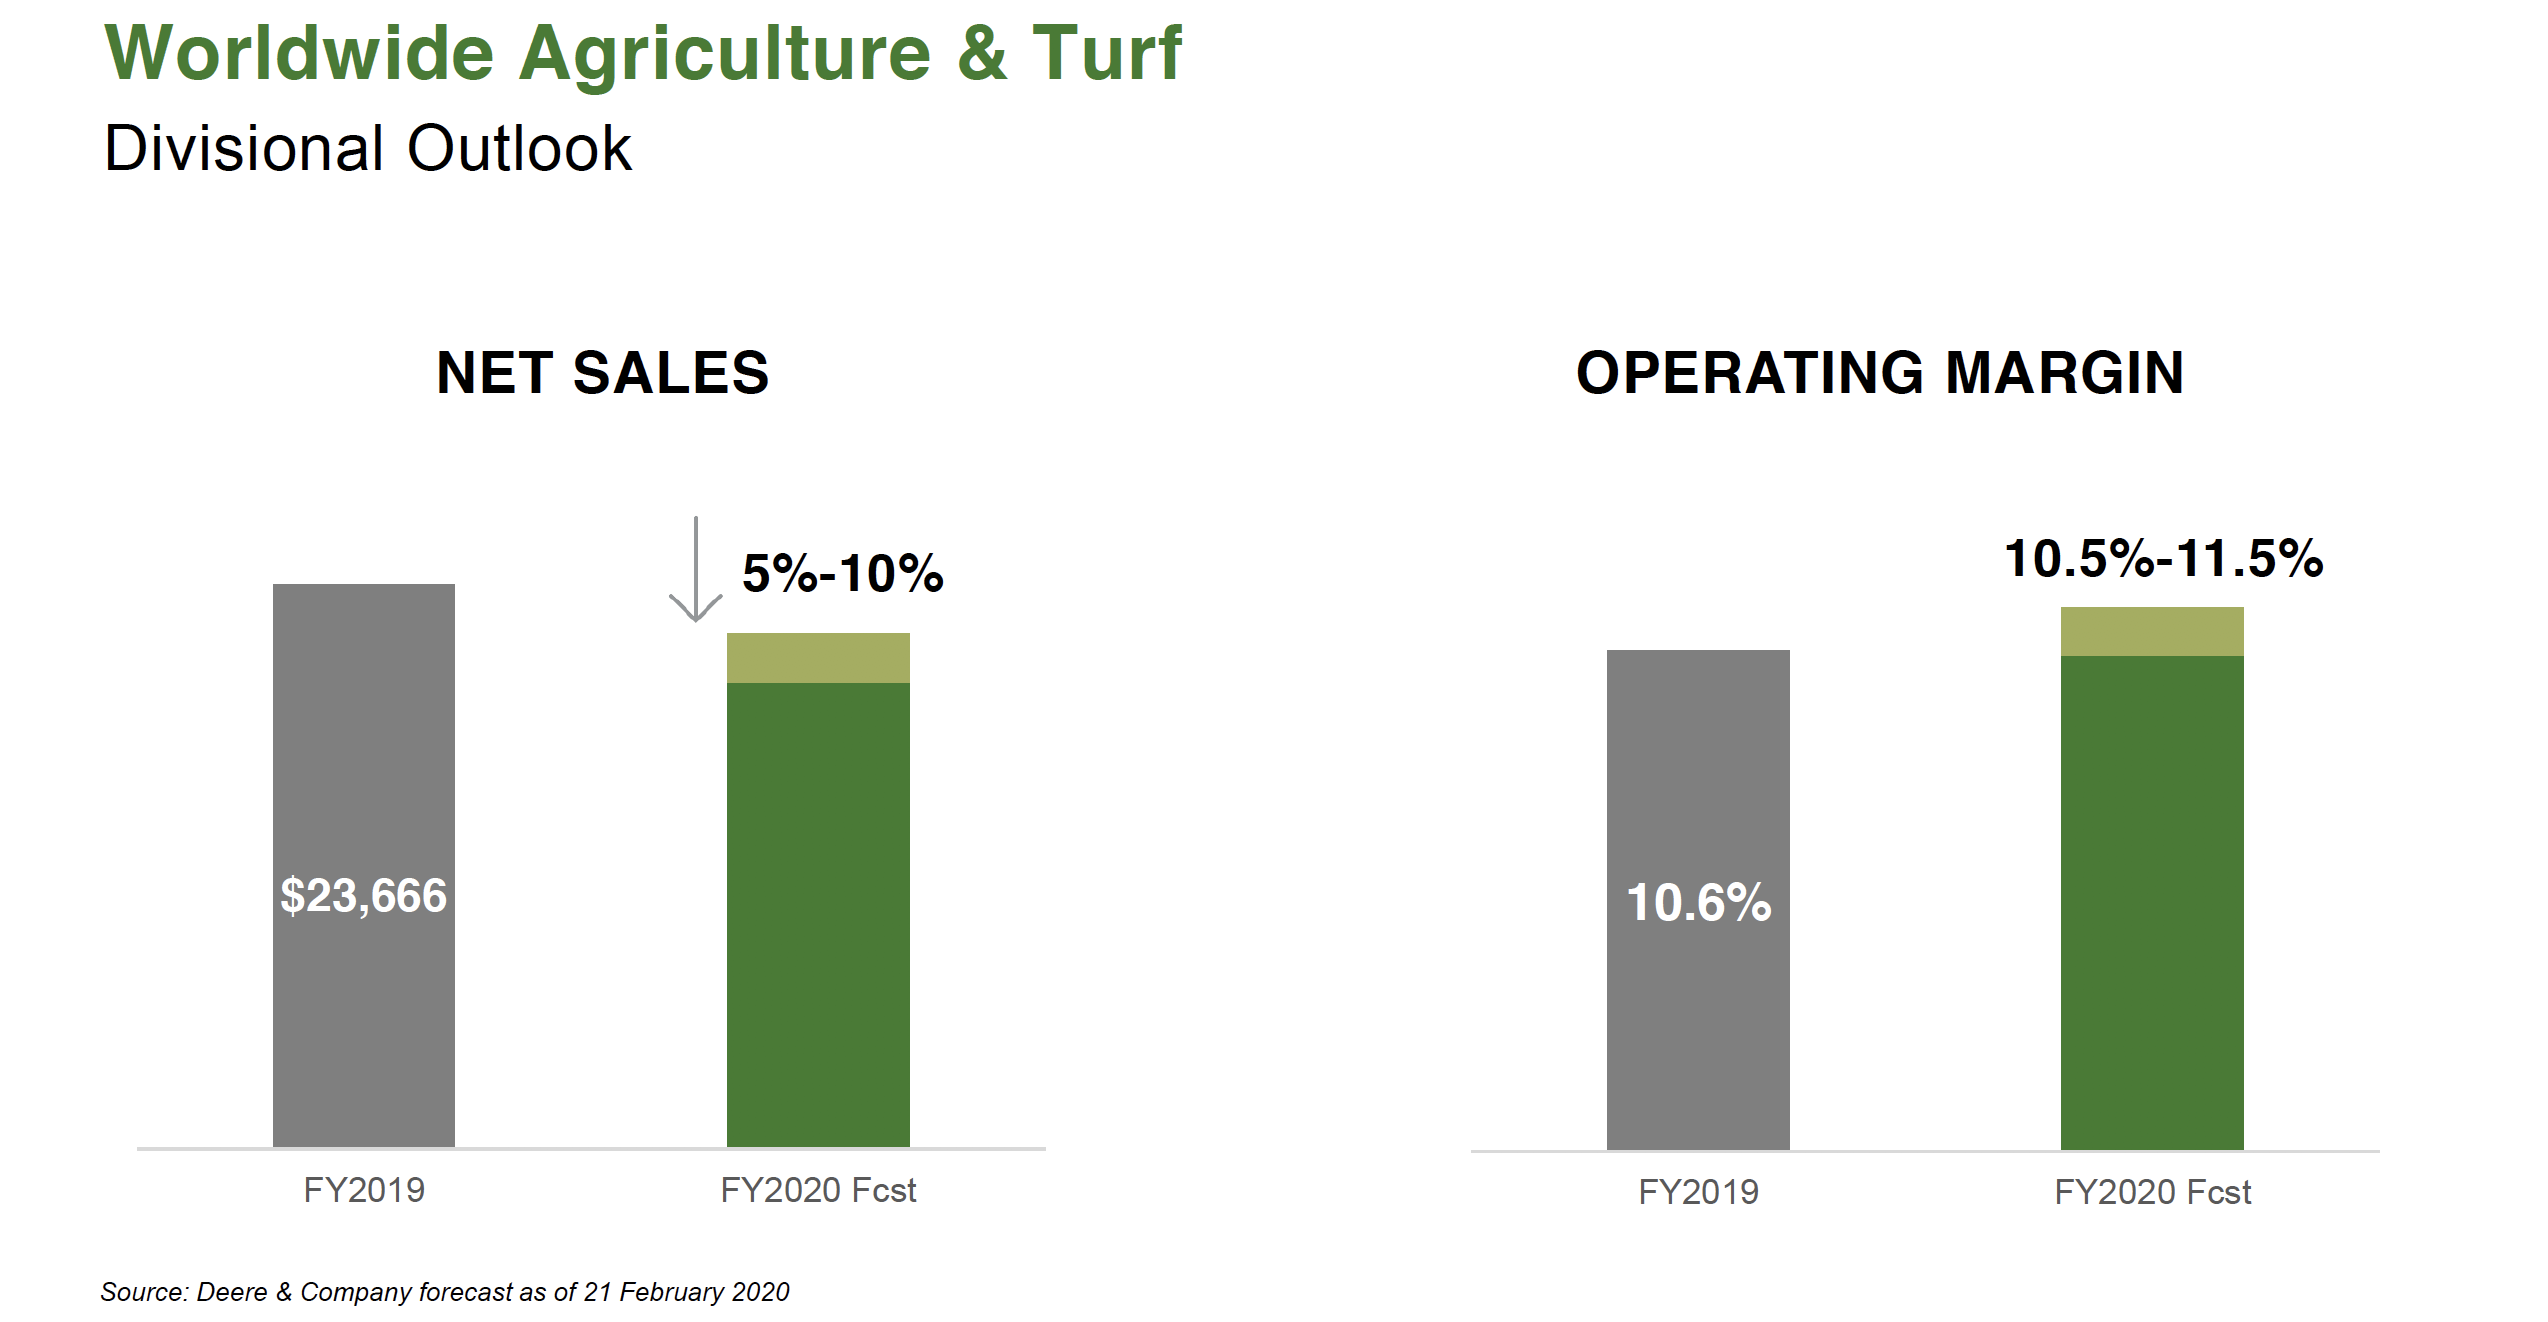 Deere 1Q20 ag and turf divisional outlook